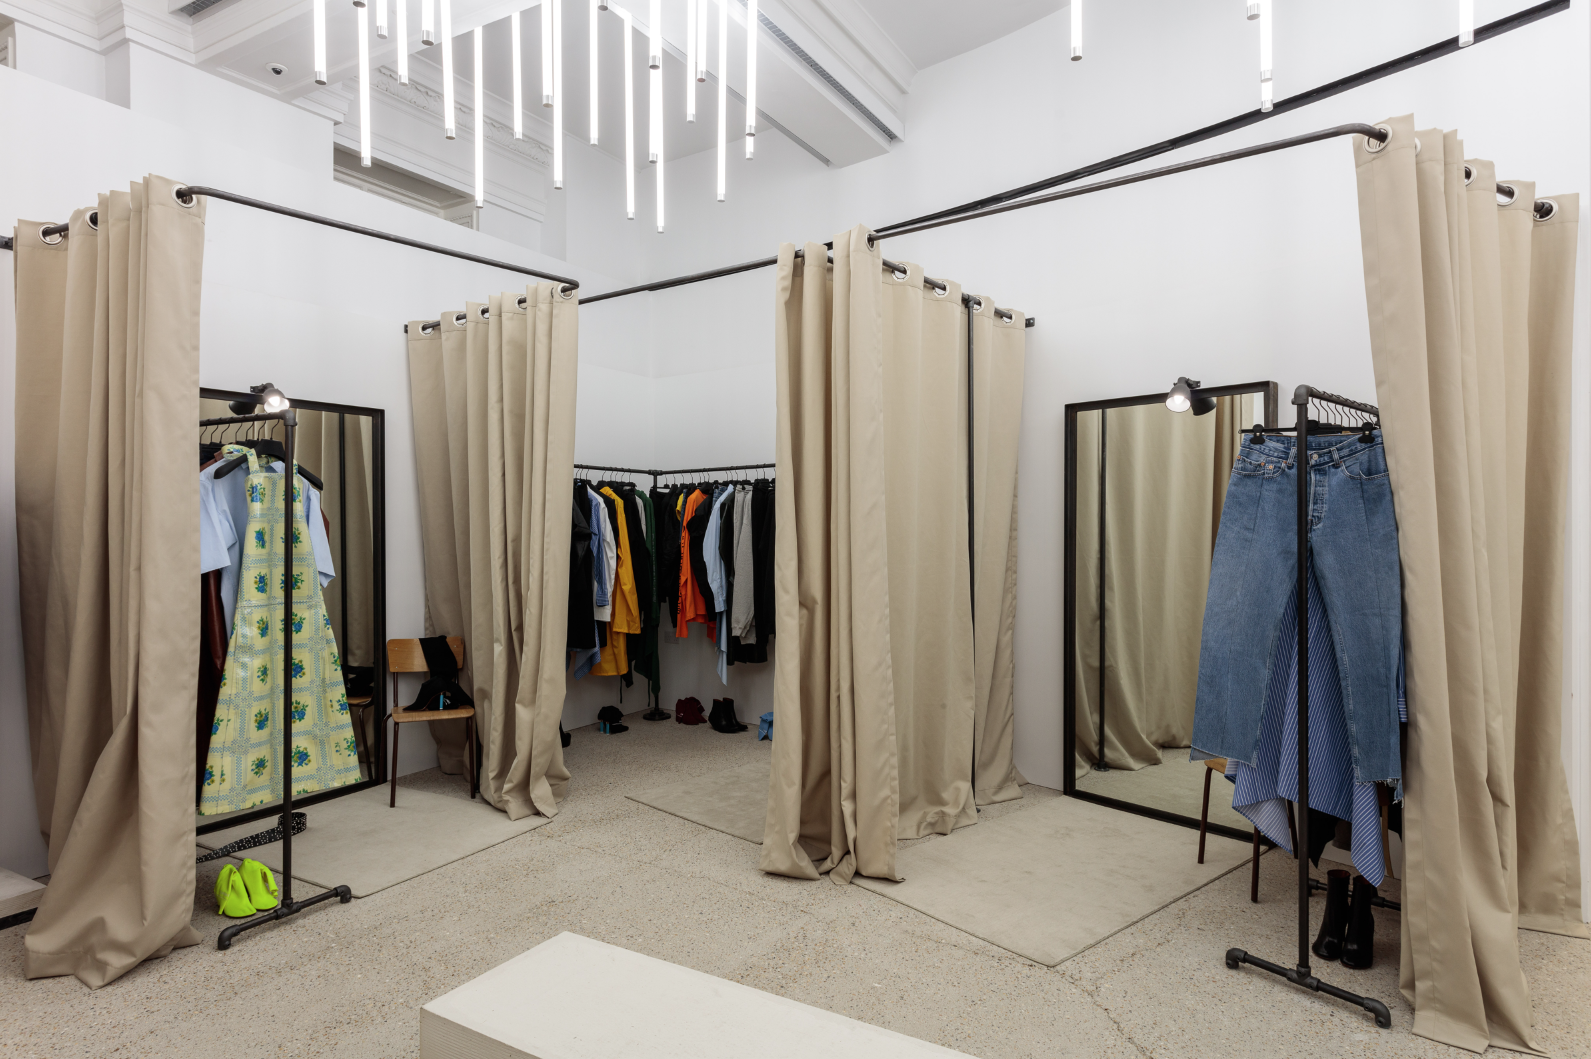 In clothes shop changing room with curtain open - 5 10